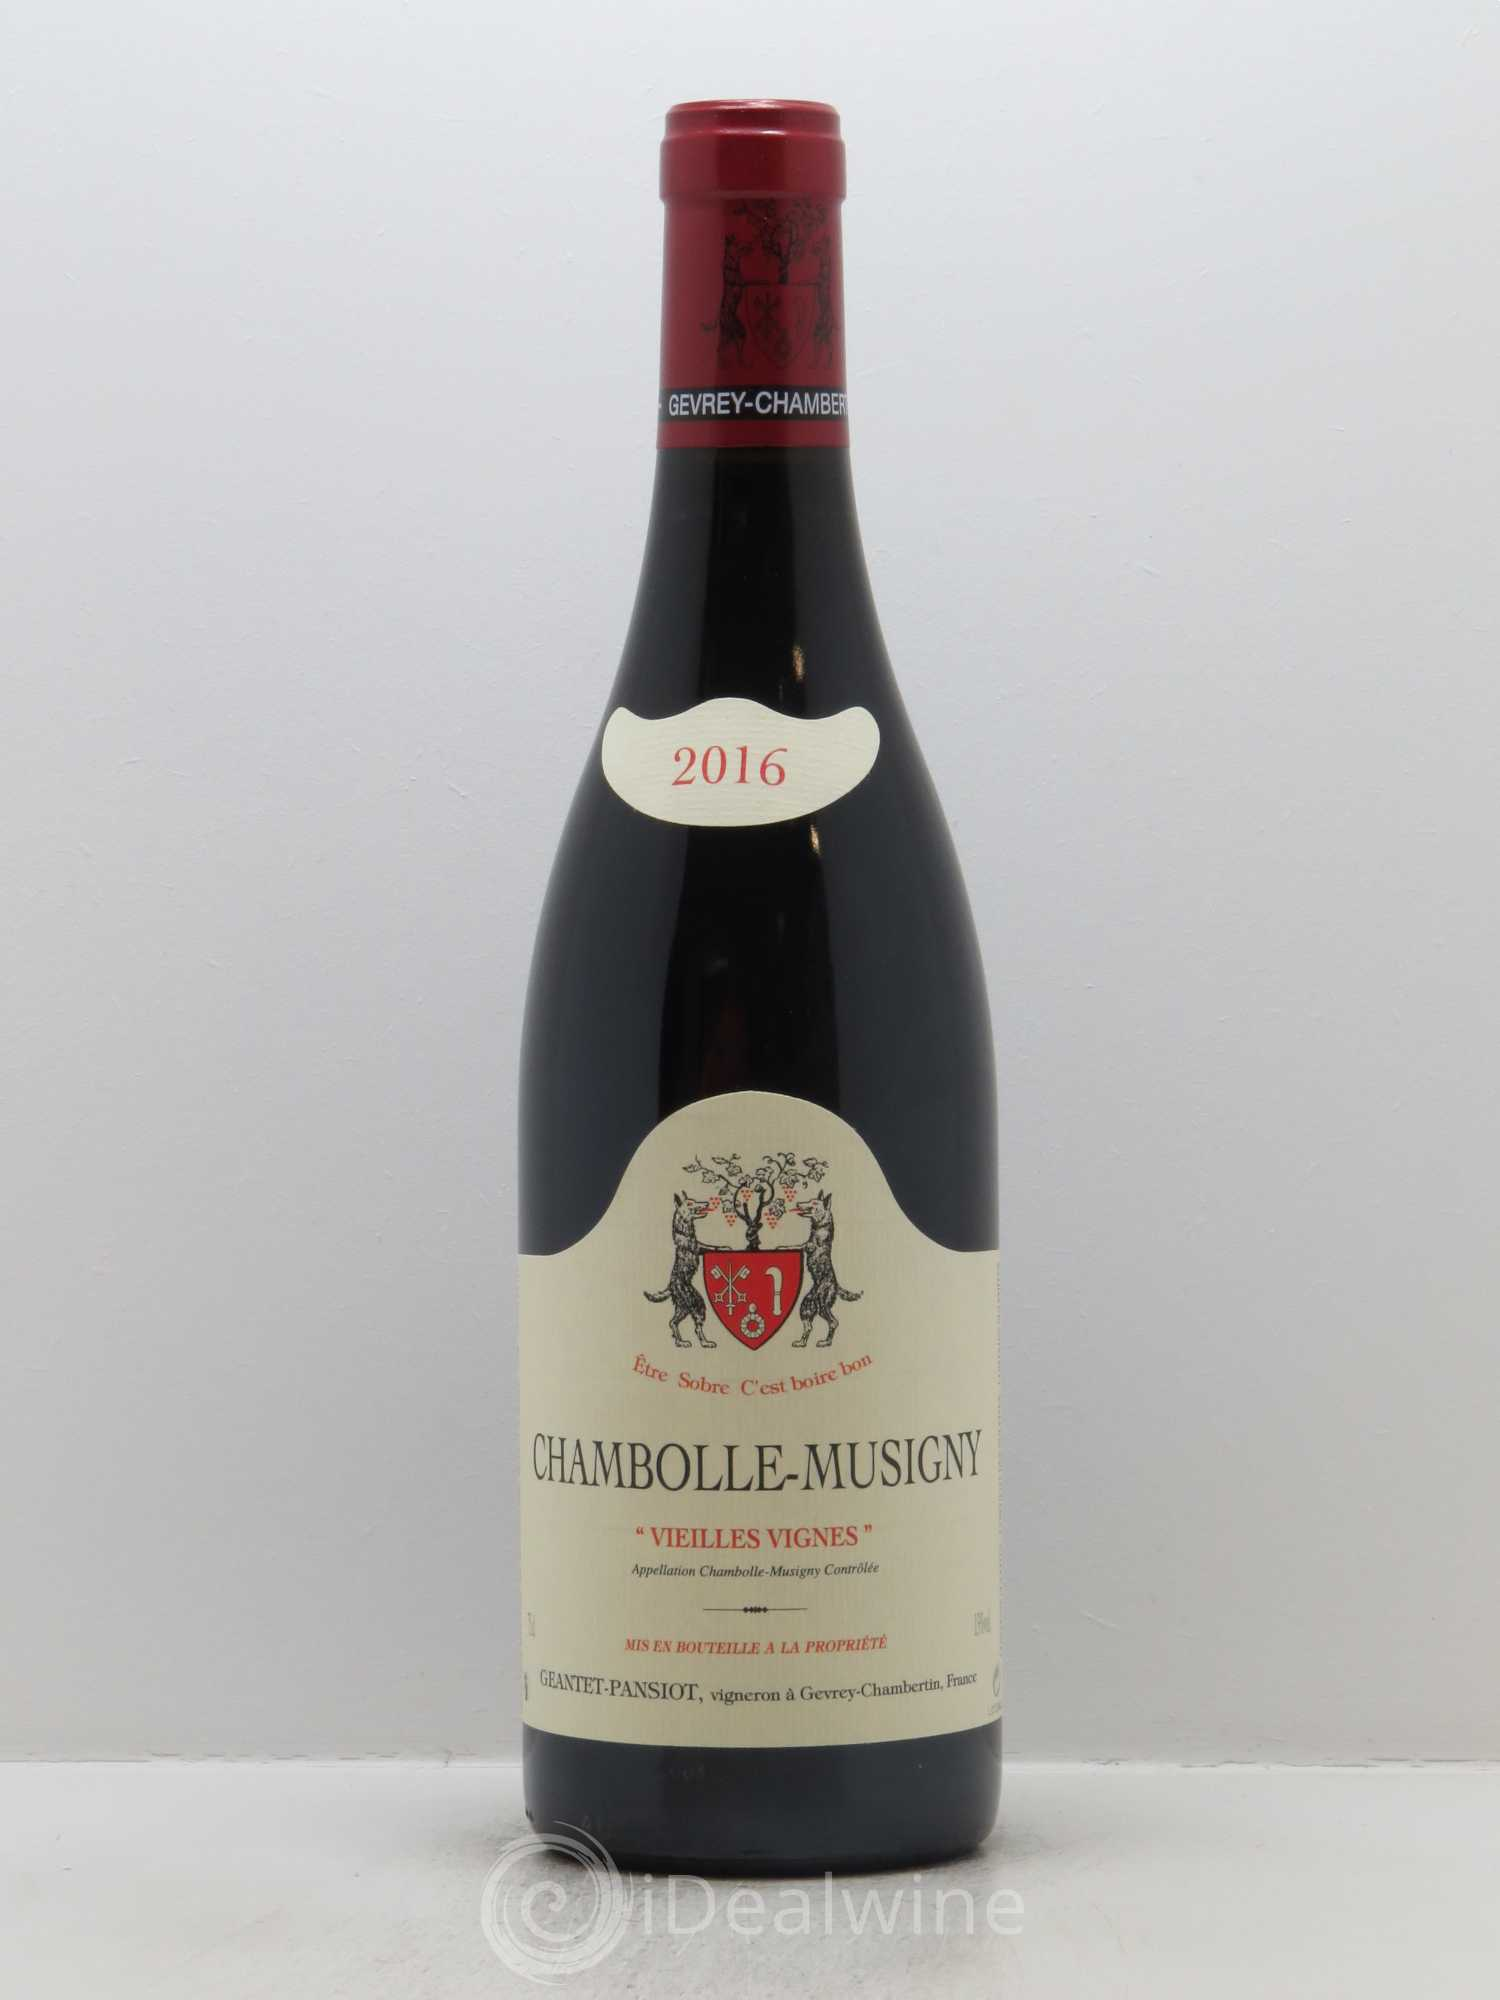 Chambolle-Musigny Vieilles vignes Geantet-Pansiot  2016 - Lot of 1 Bottle